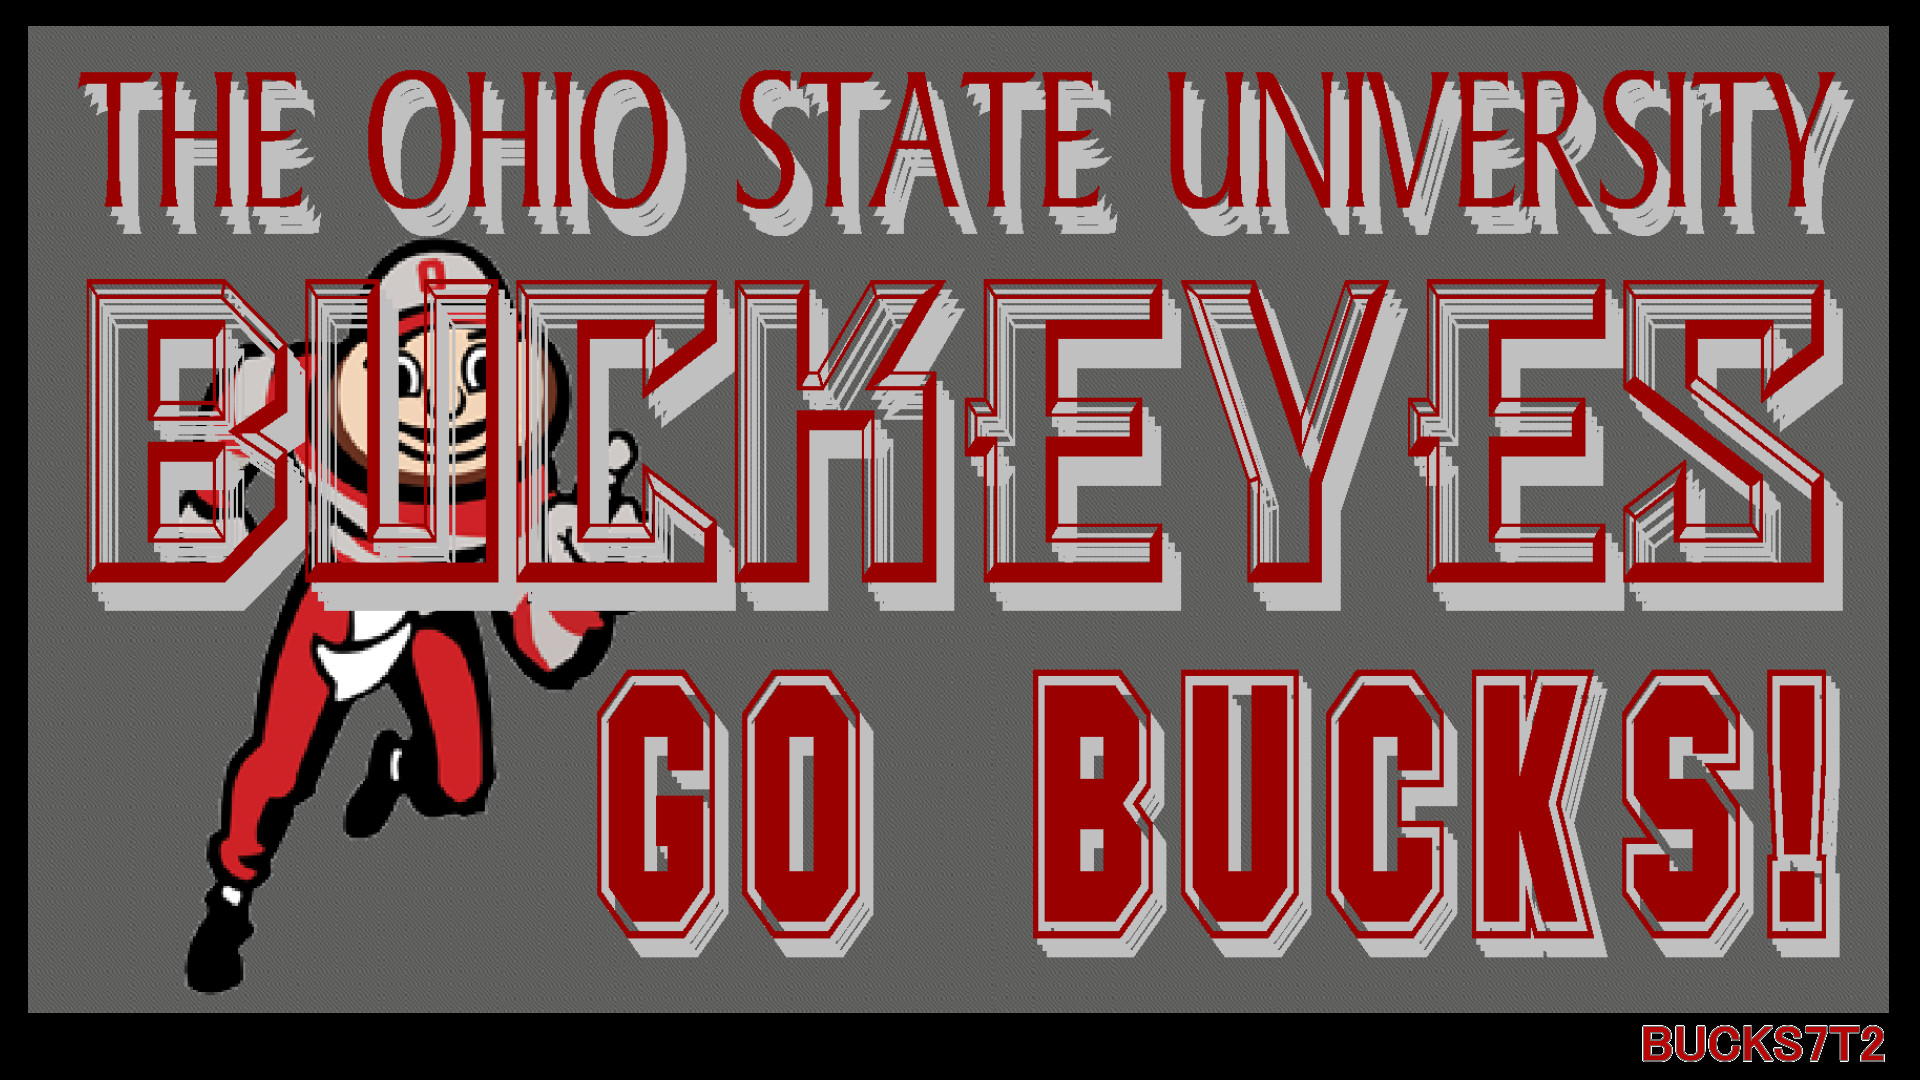 1920x1080 Ohio State Buckeyes images THE OHIO STATE UNIVERSITY GO BUCKS! HD wallpaper  and background photos